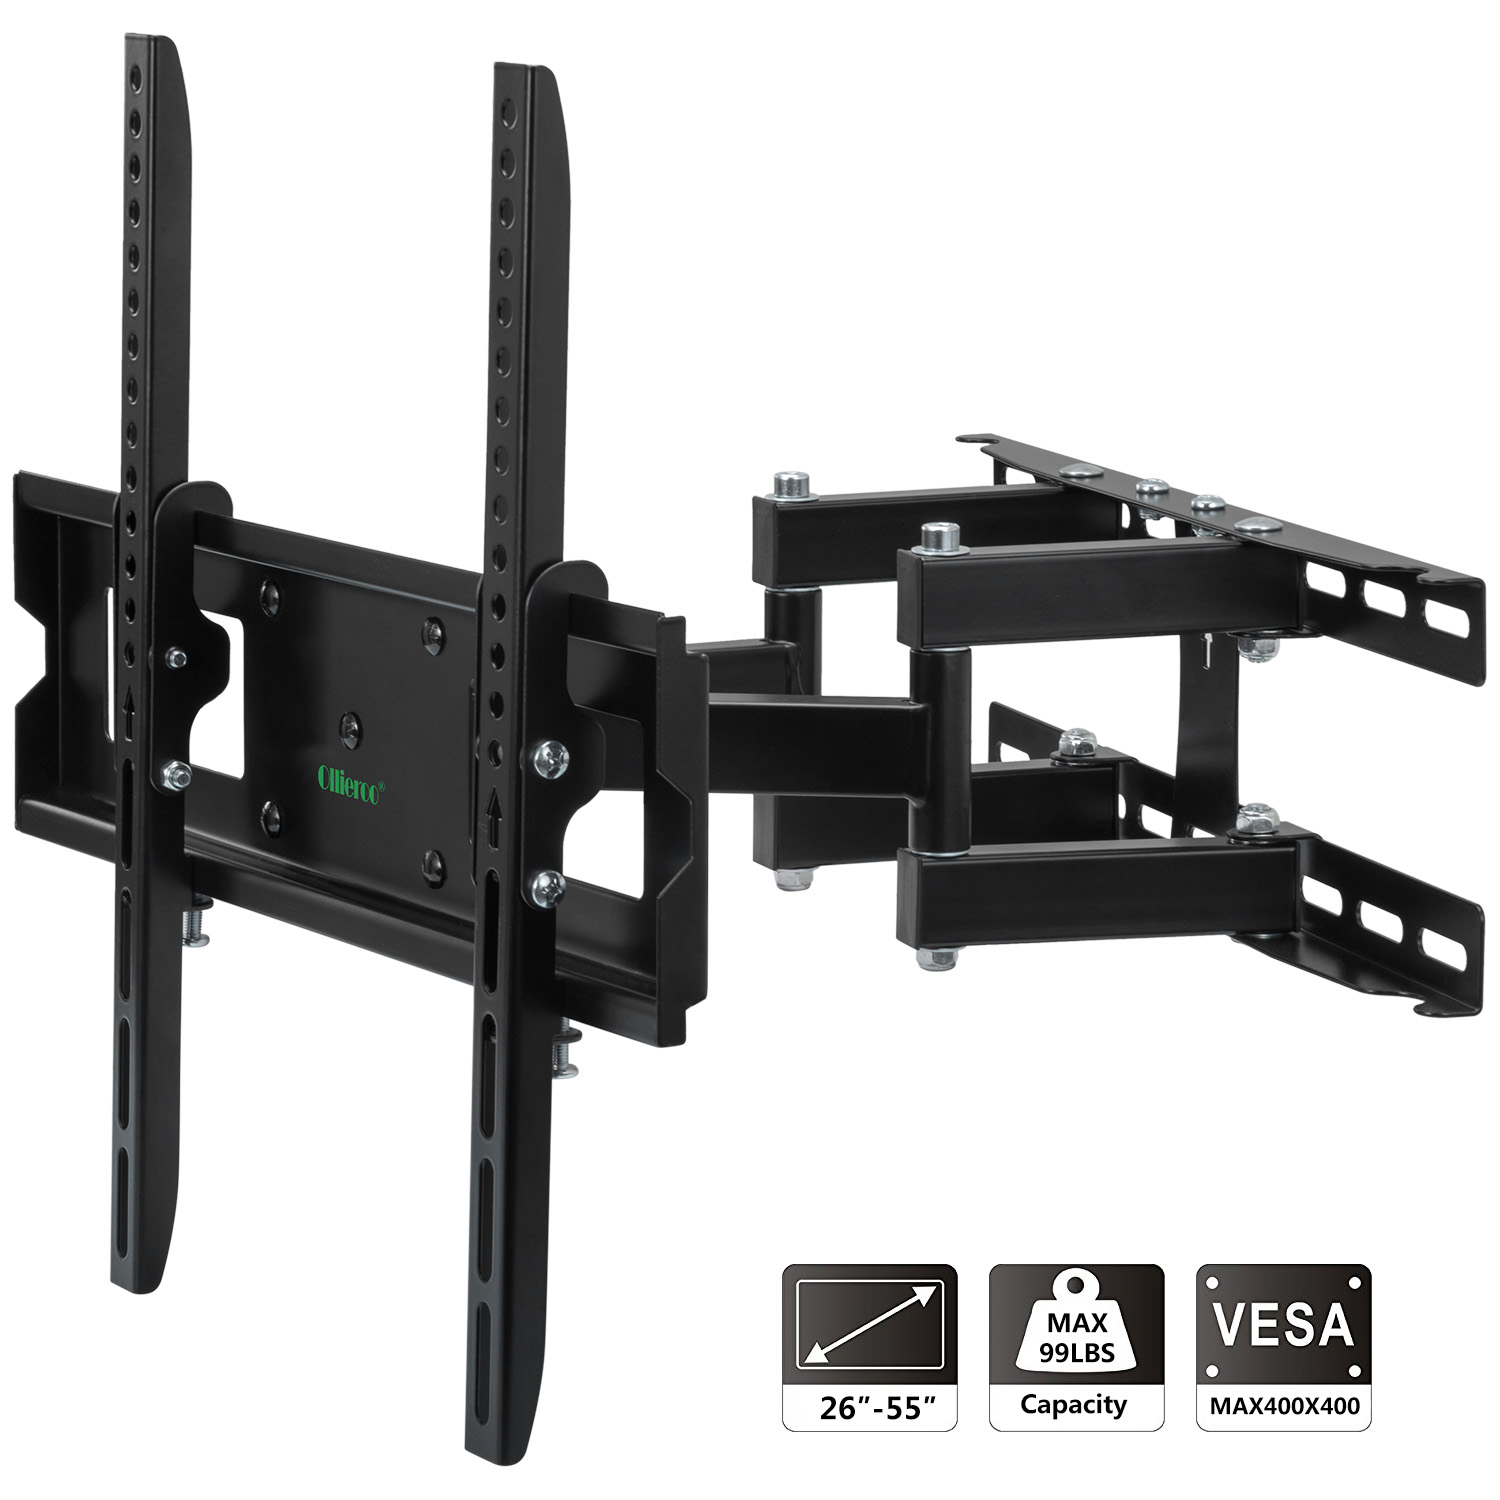 Allieroo Full Motion Articulating TV Wall Mount for Most 26-55 Inch TV up to VESA 400x400mm and 99 LBS